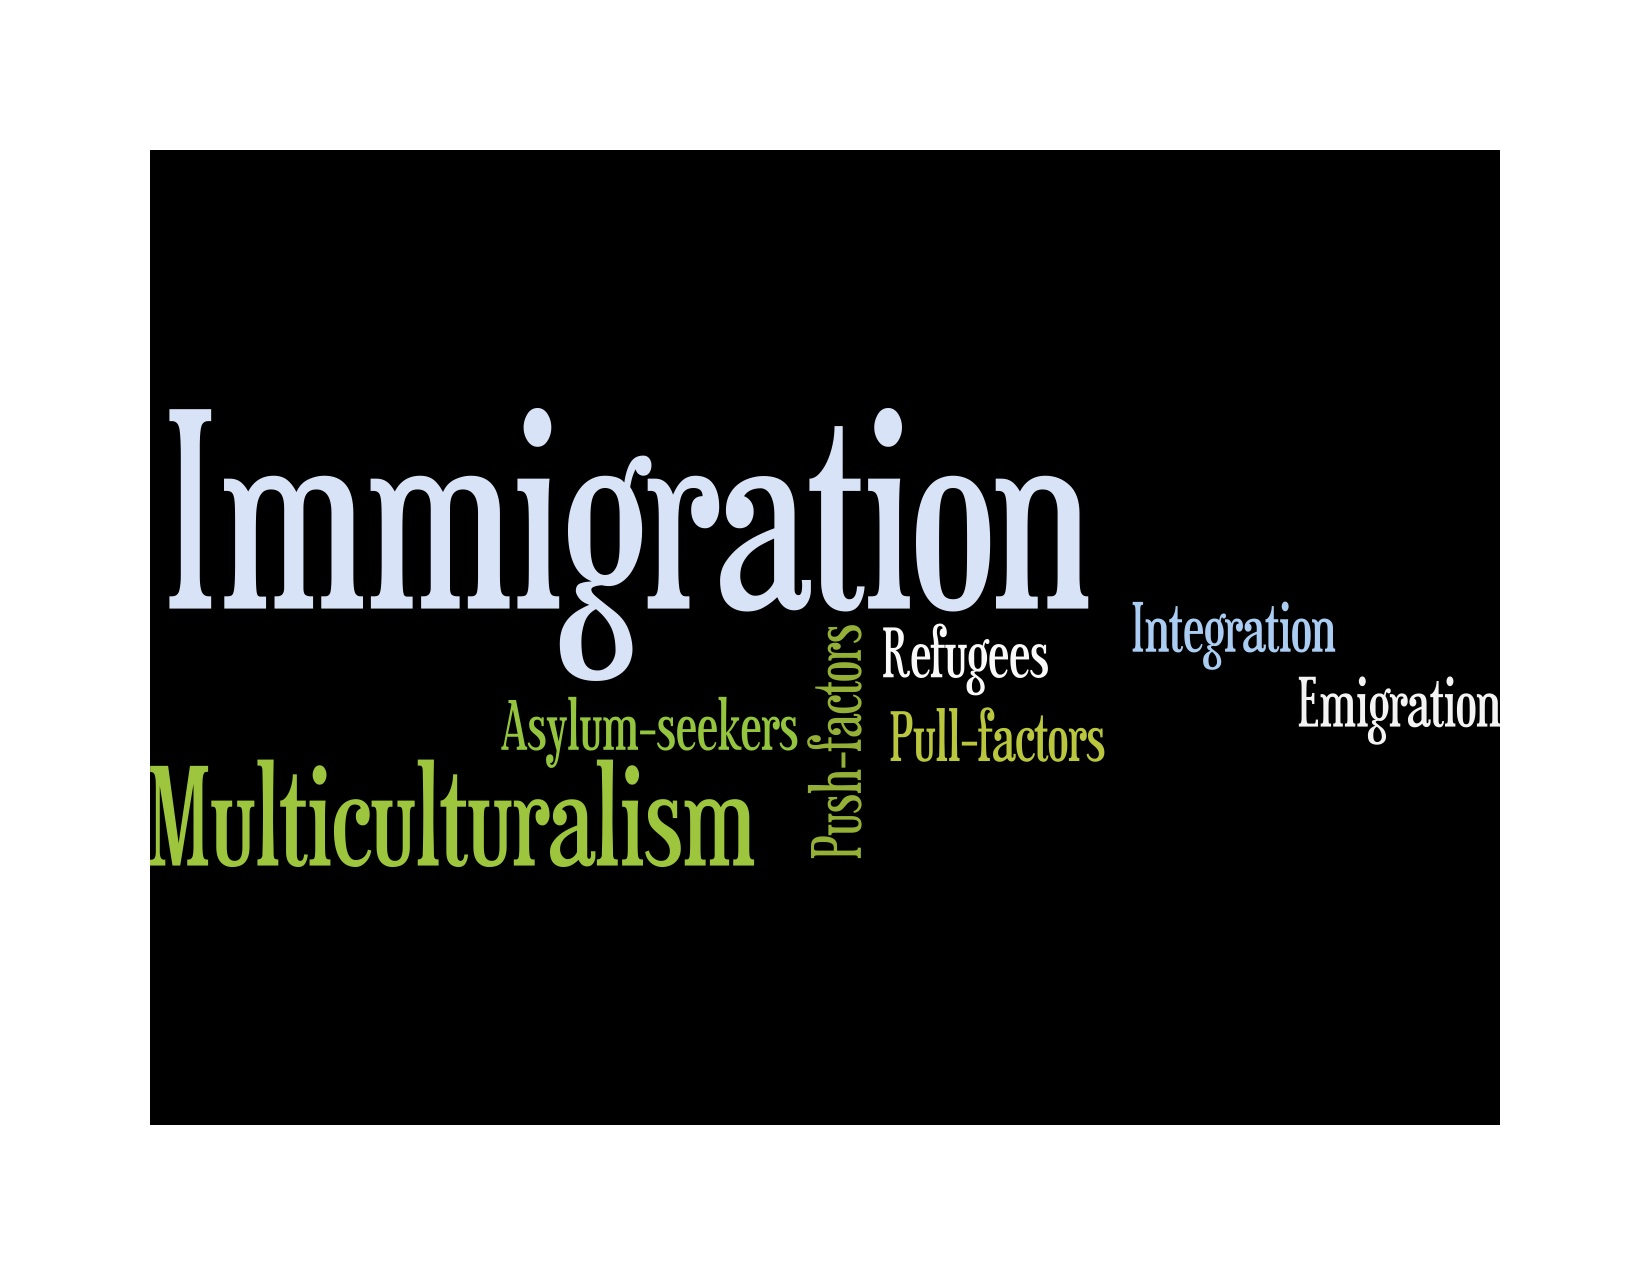 016 Immigration Essay Example Exceptional Policy Examples Reform Questions Prompt Full